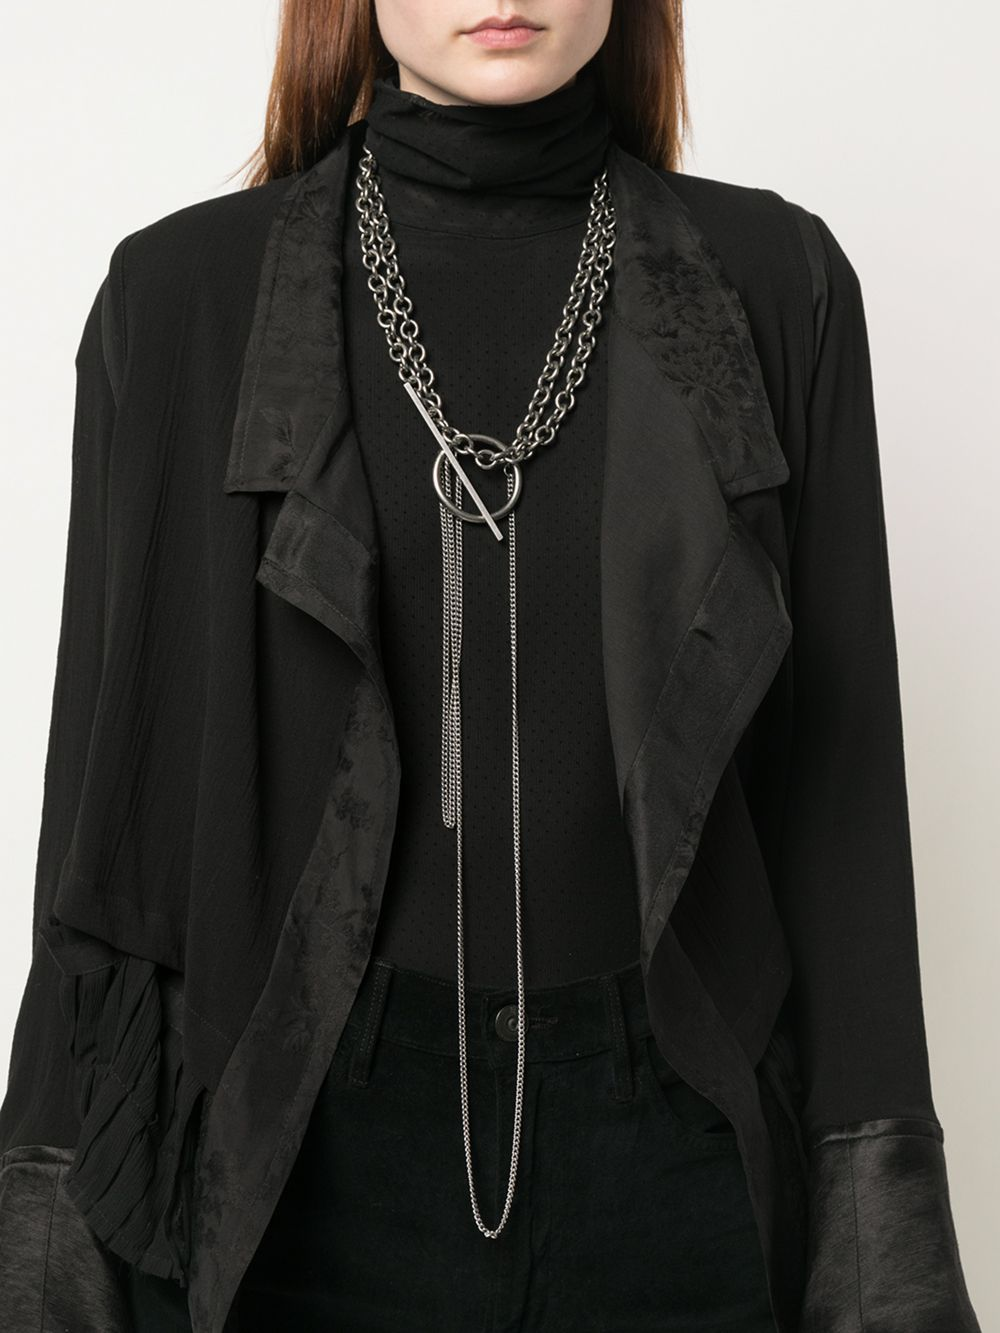 ANN DEMEULEMEESTER WOMEN CHAIN NECKLACE